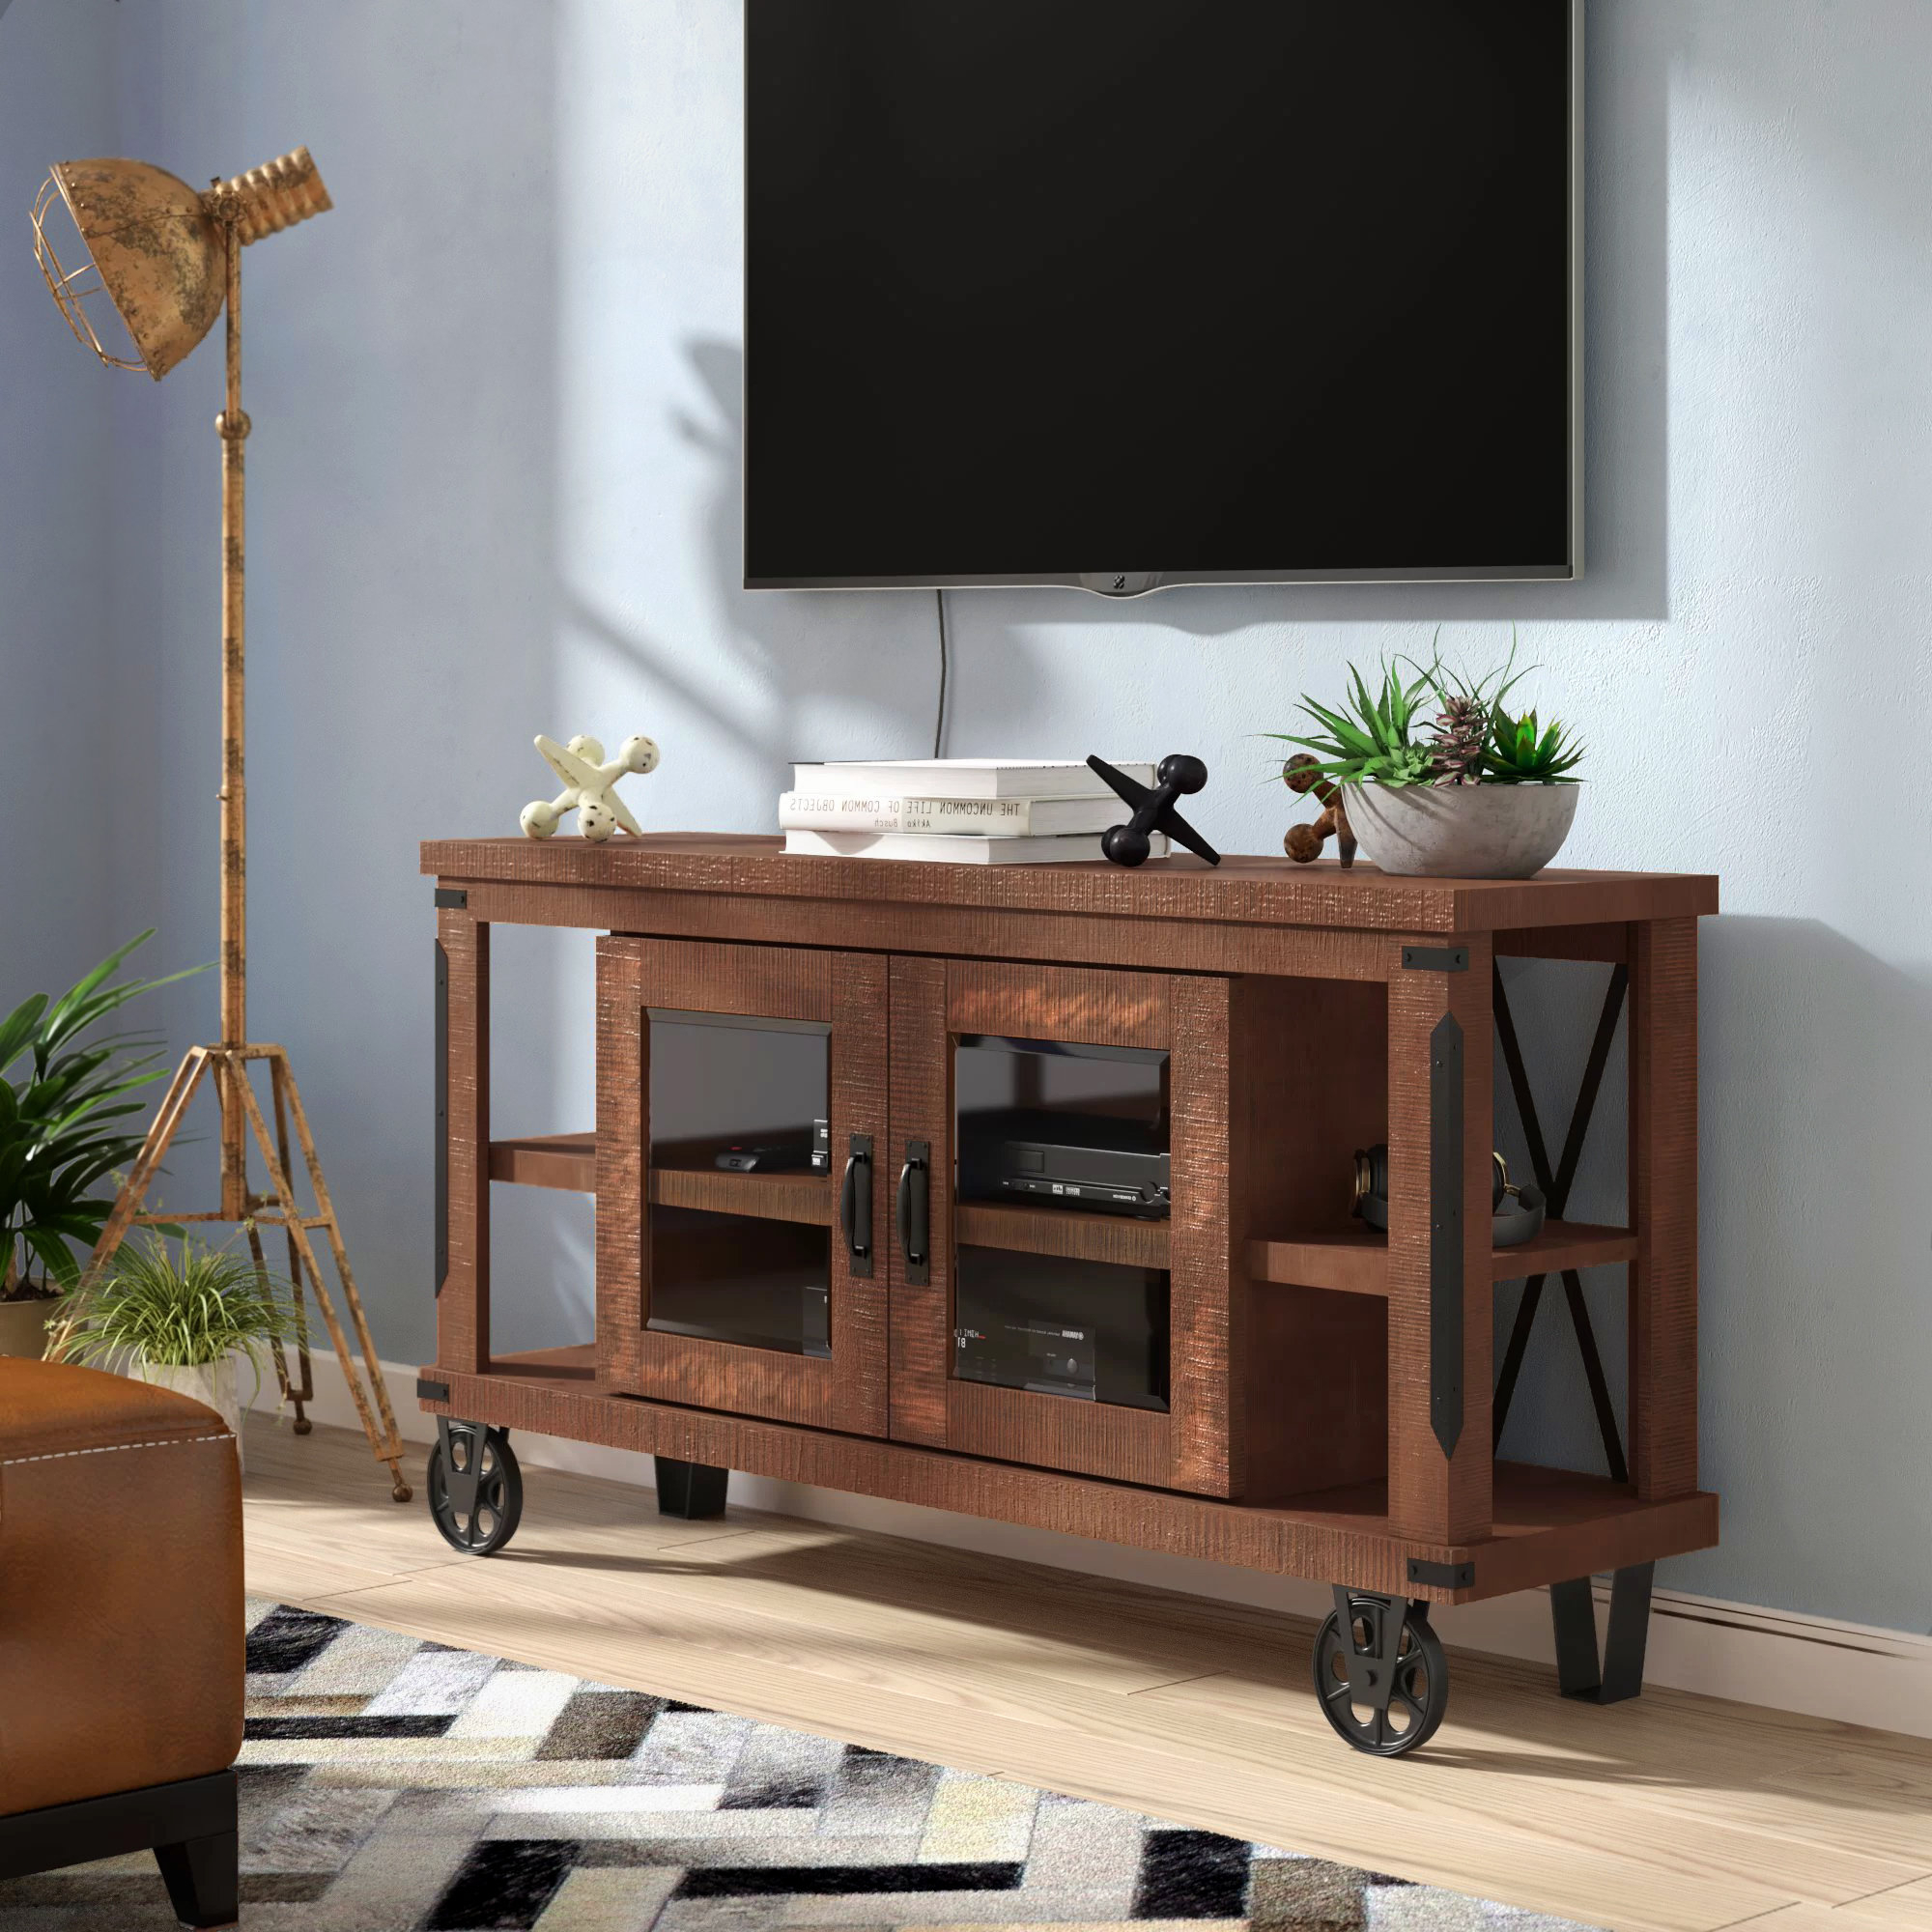 60 69 Inch Tv Stands You'll Love | Wayfair (View 4 of 20)